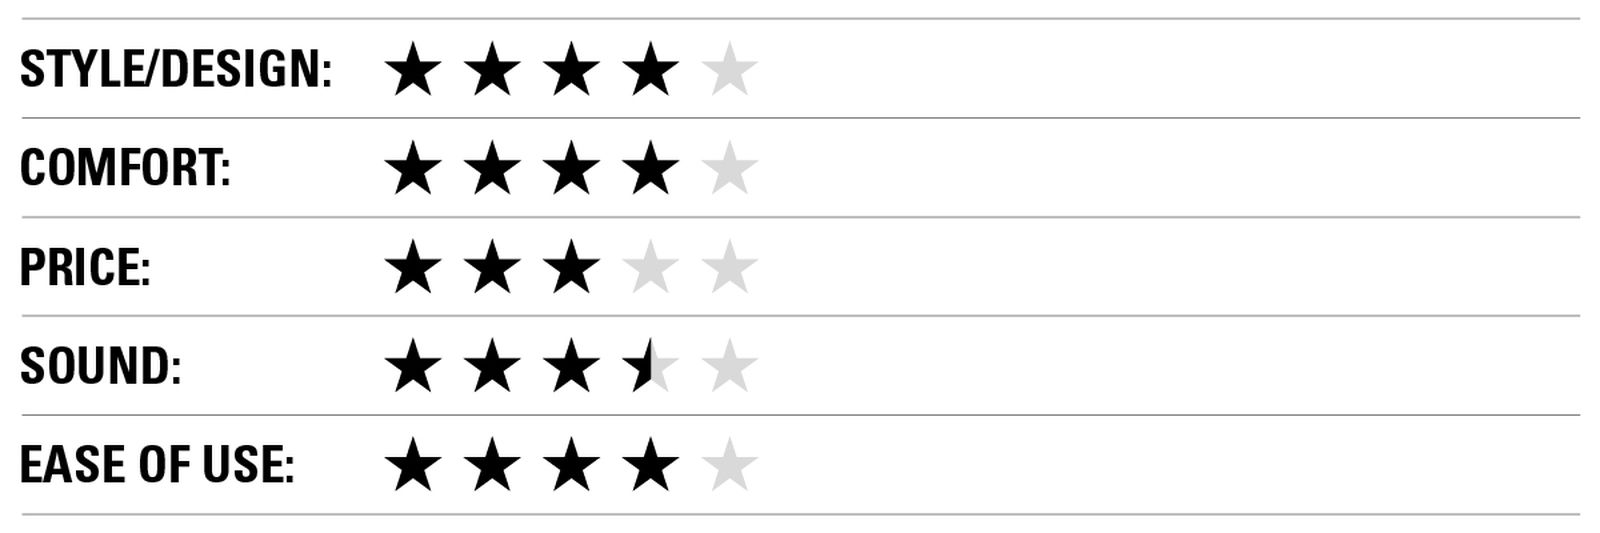 ED_SEL_Headphone rating graphic - stars-01